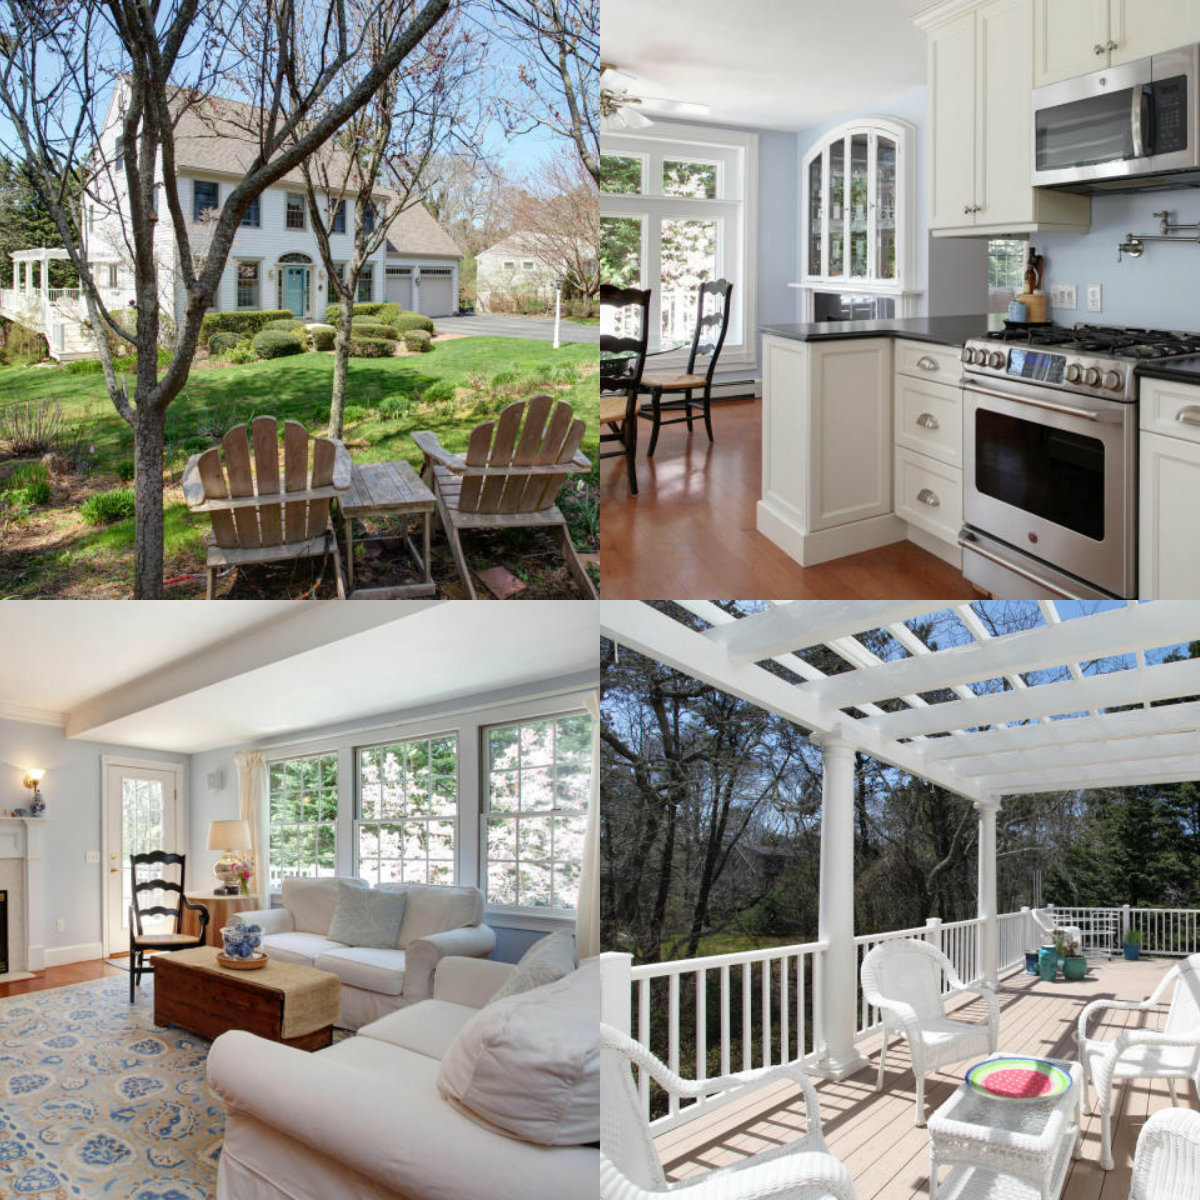 Images of 9 Beachway Road by Sandy Neck on Cape Cod MA